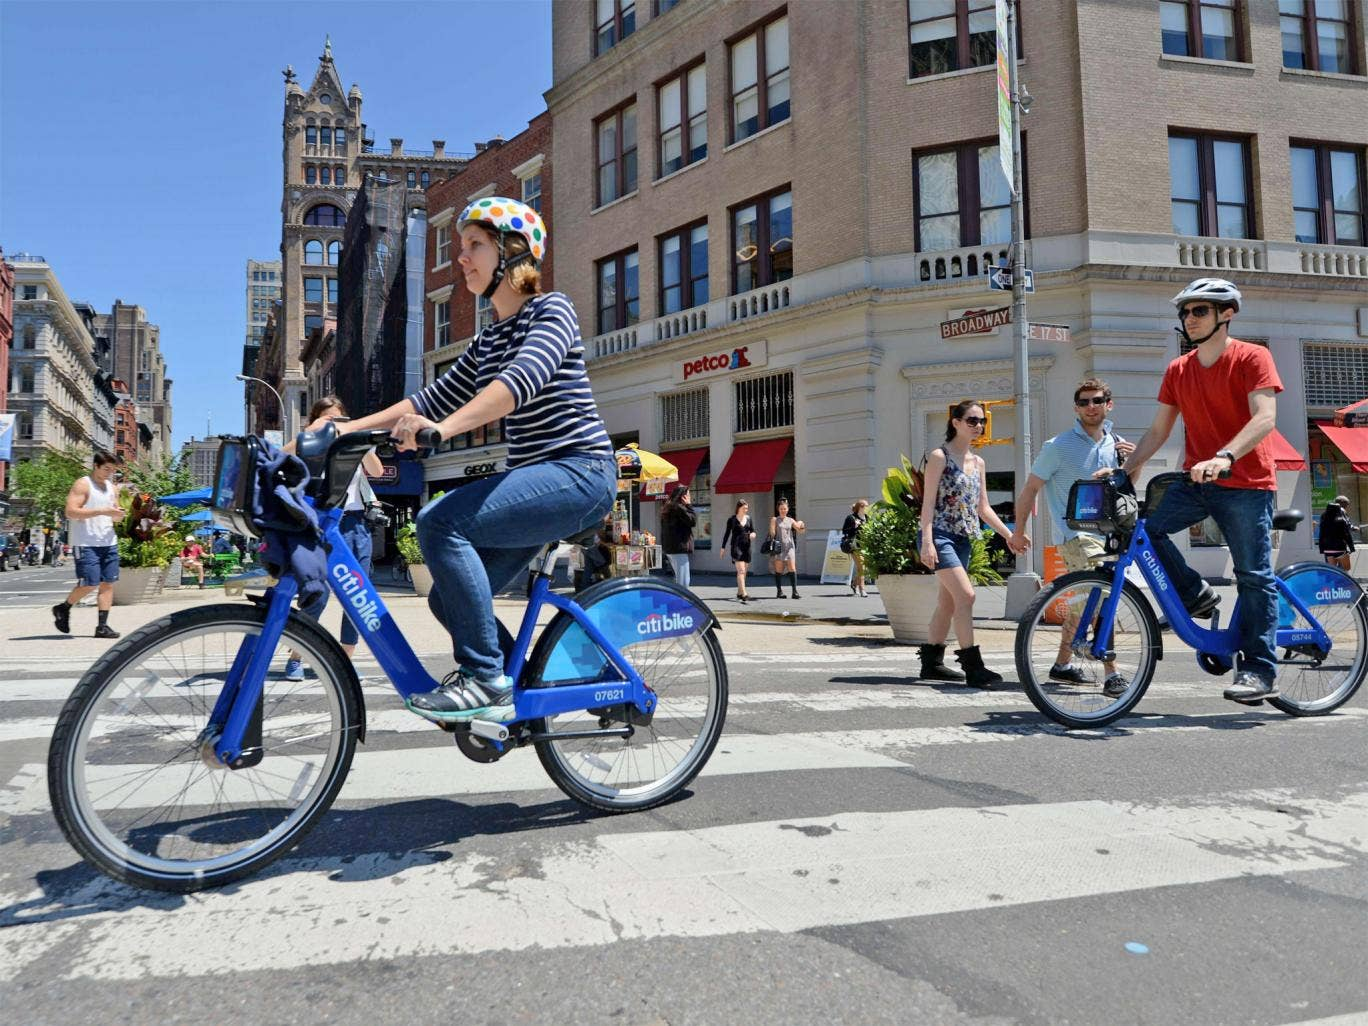 New Yorkers have embraced the Citi Bikes